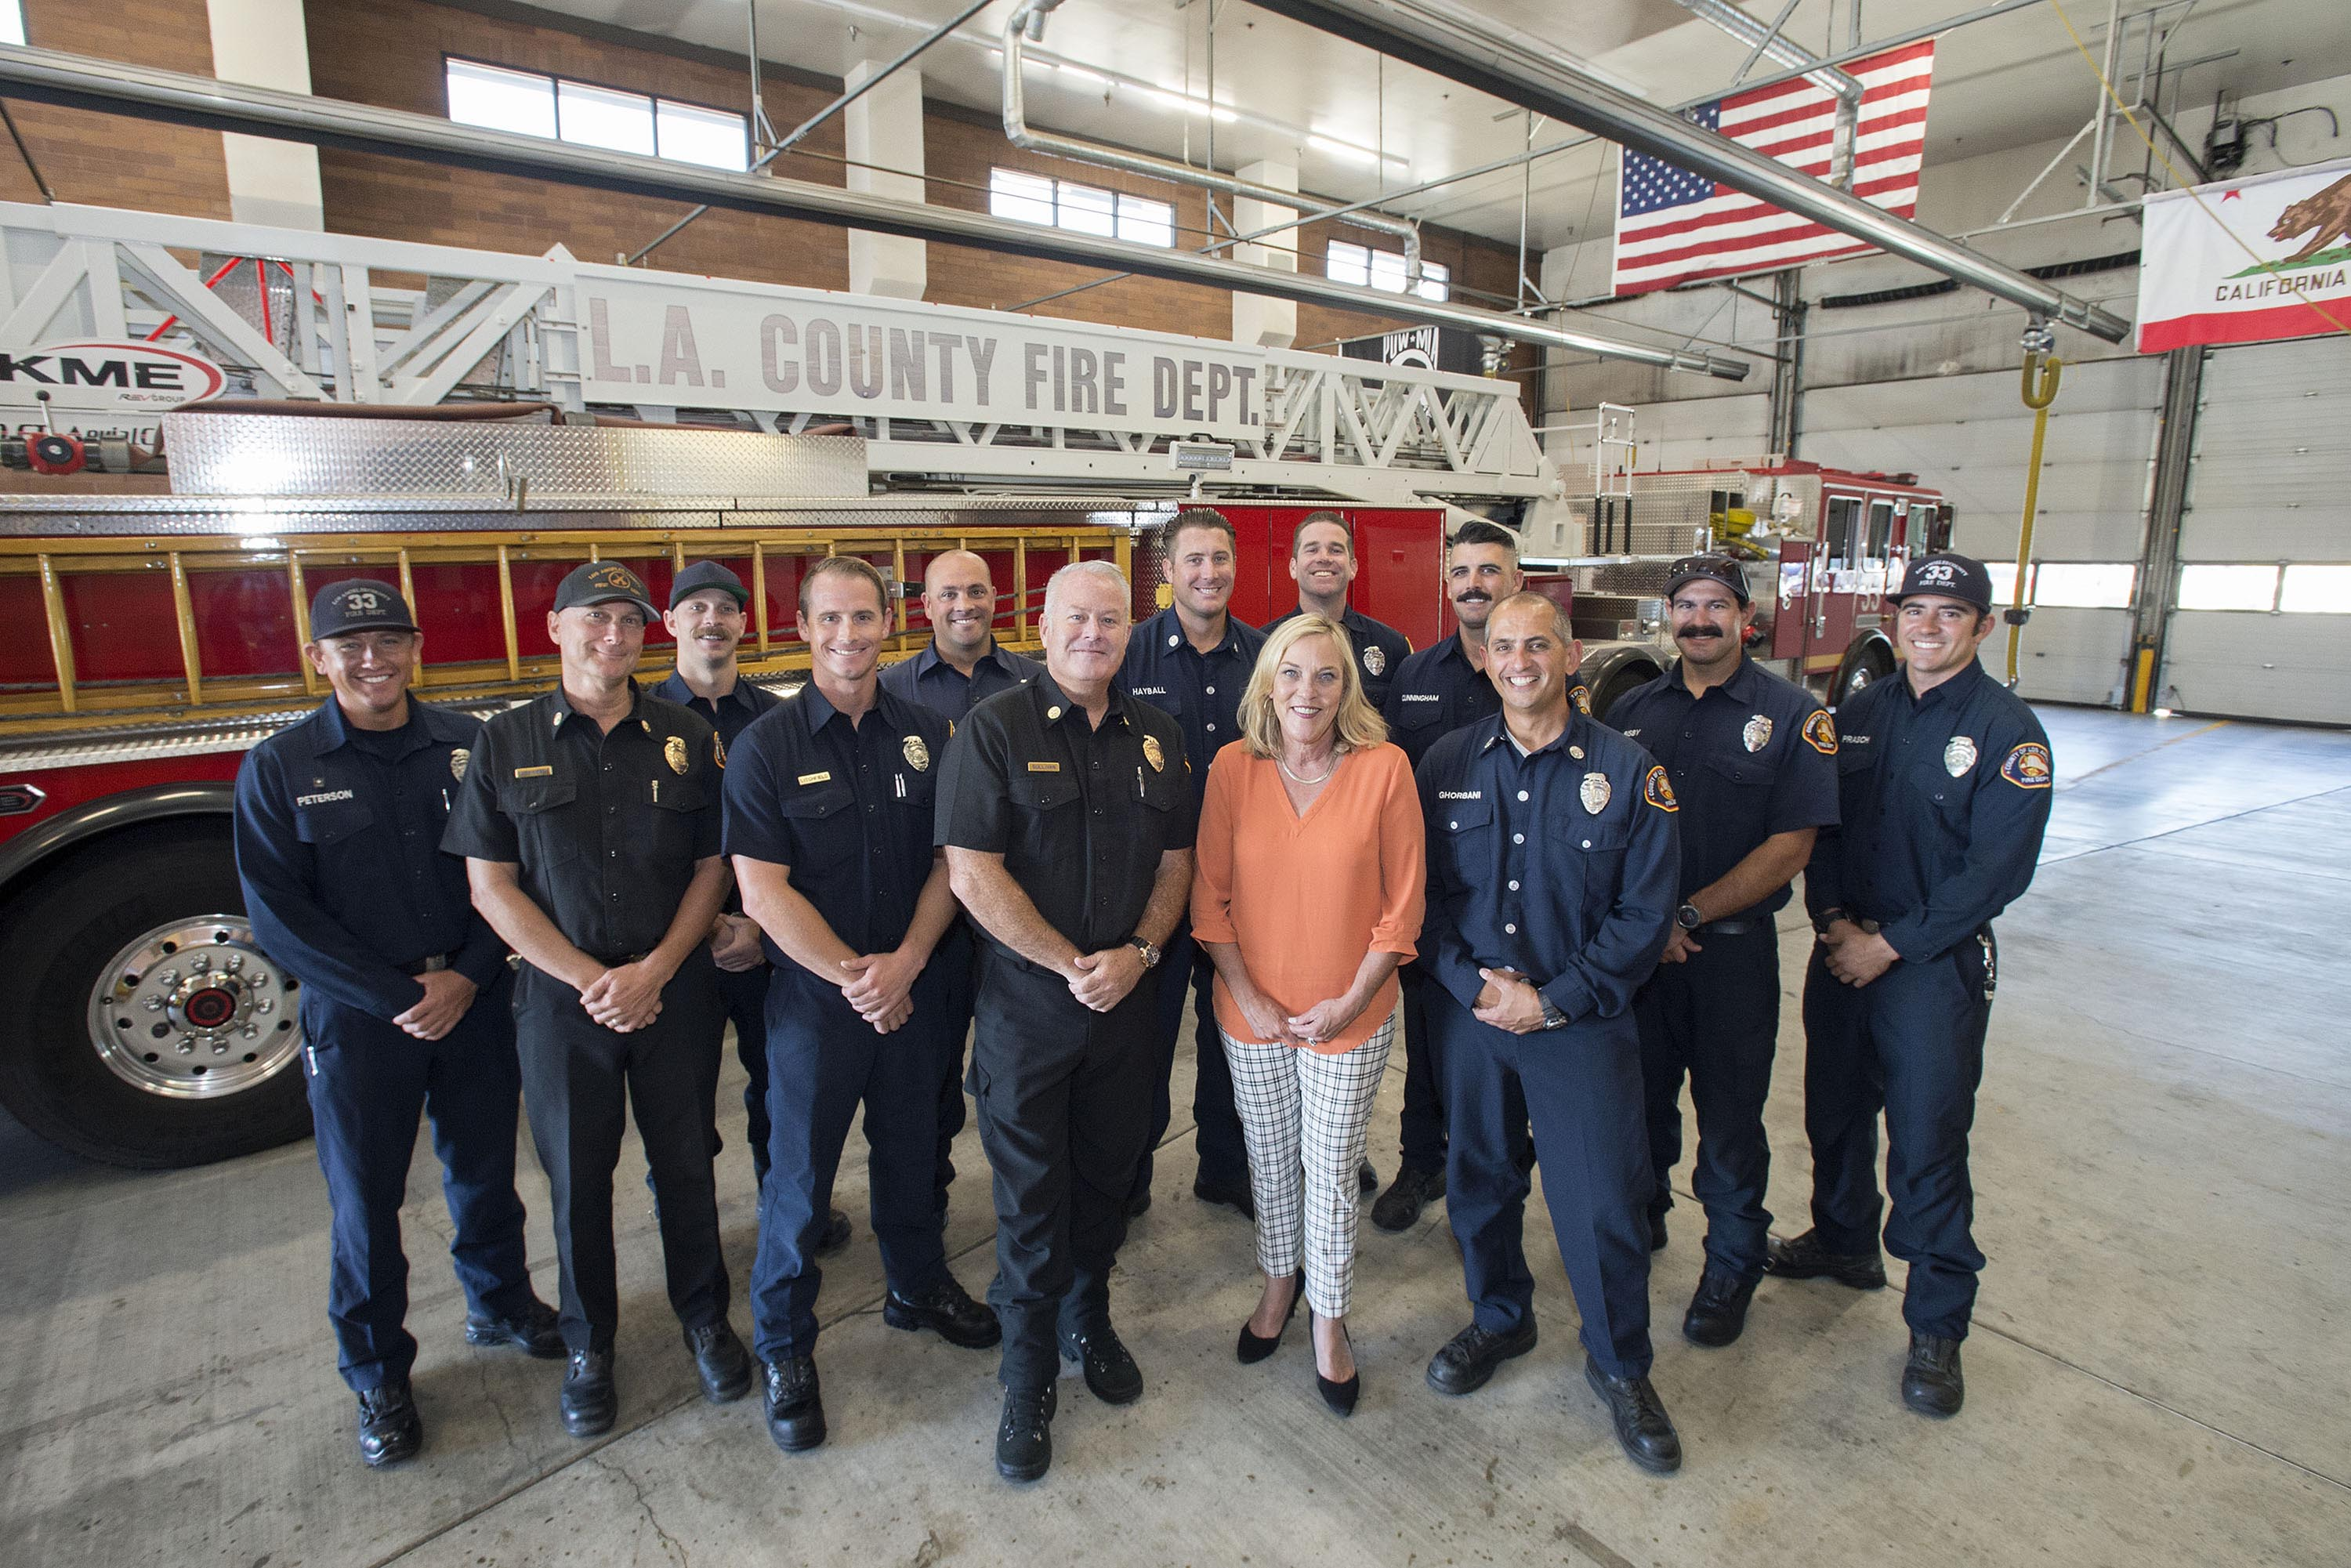 District 5 – Supervisor Kathryn Barger<br> <b>Sept. 20, 2019 – LACO Fire Station 33 visit. </b><br> <i>Photo by Diandra Jay / Board of Supervisor</i>